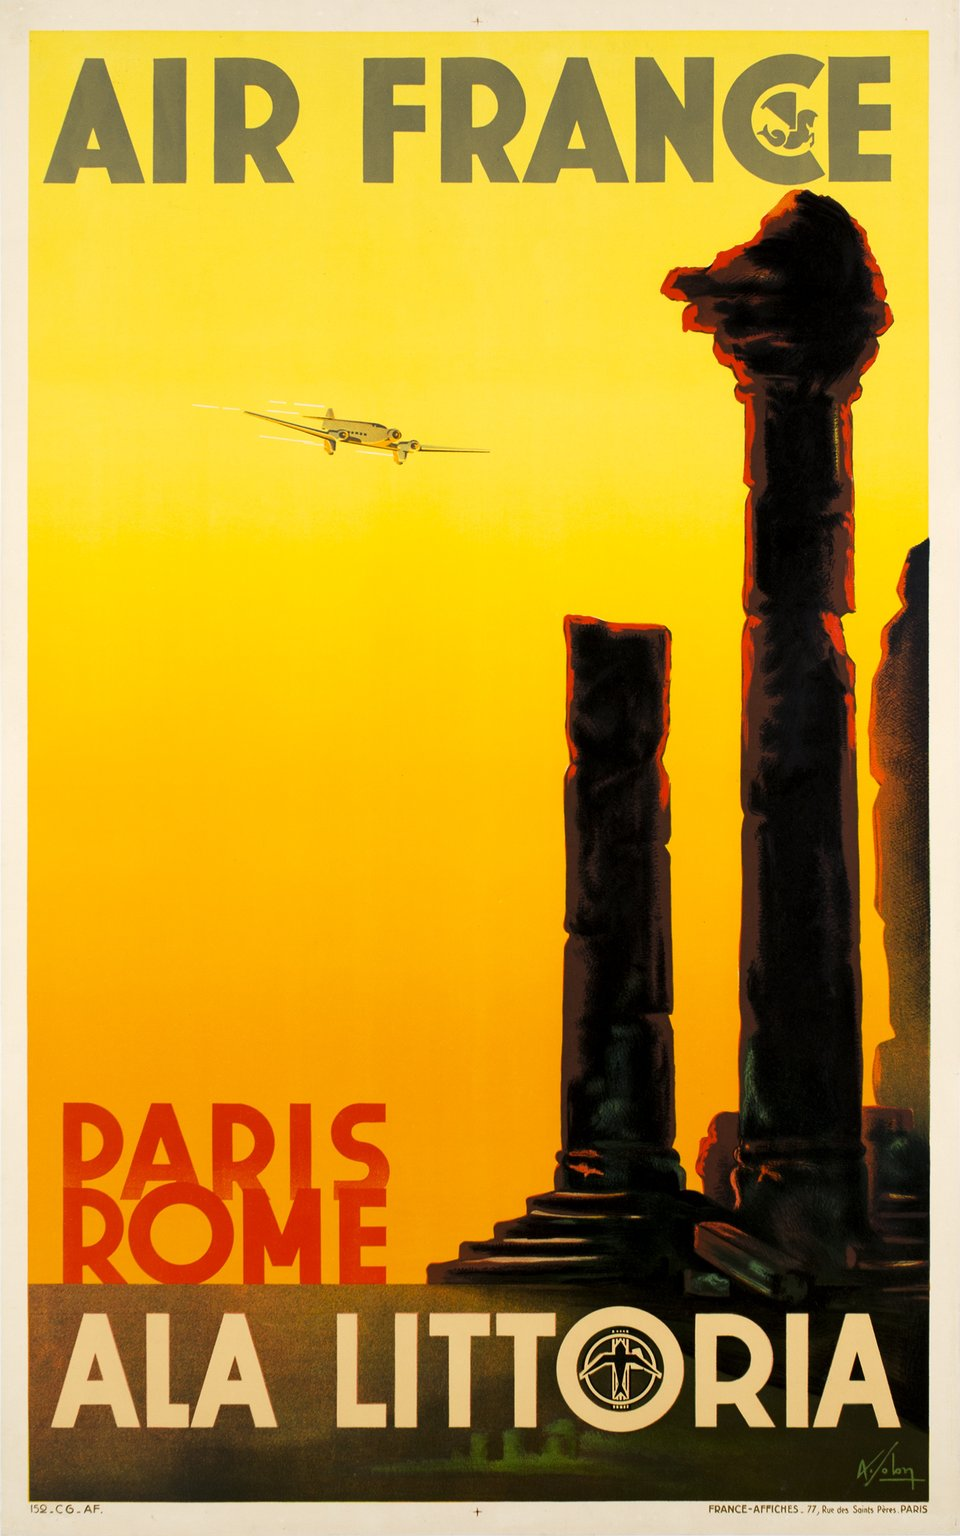 Air France, Paris - Rome, Ala Littoria – Vintage poster – Albert SOLON – 1938